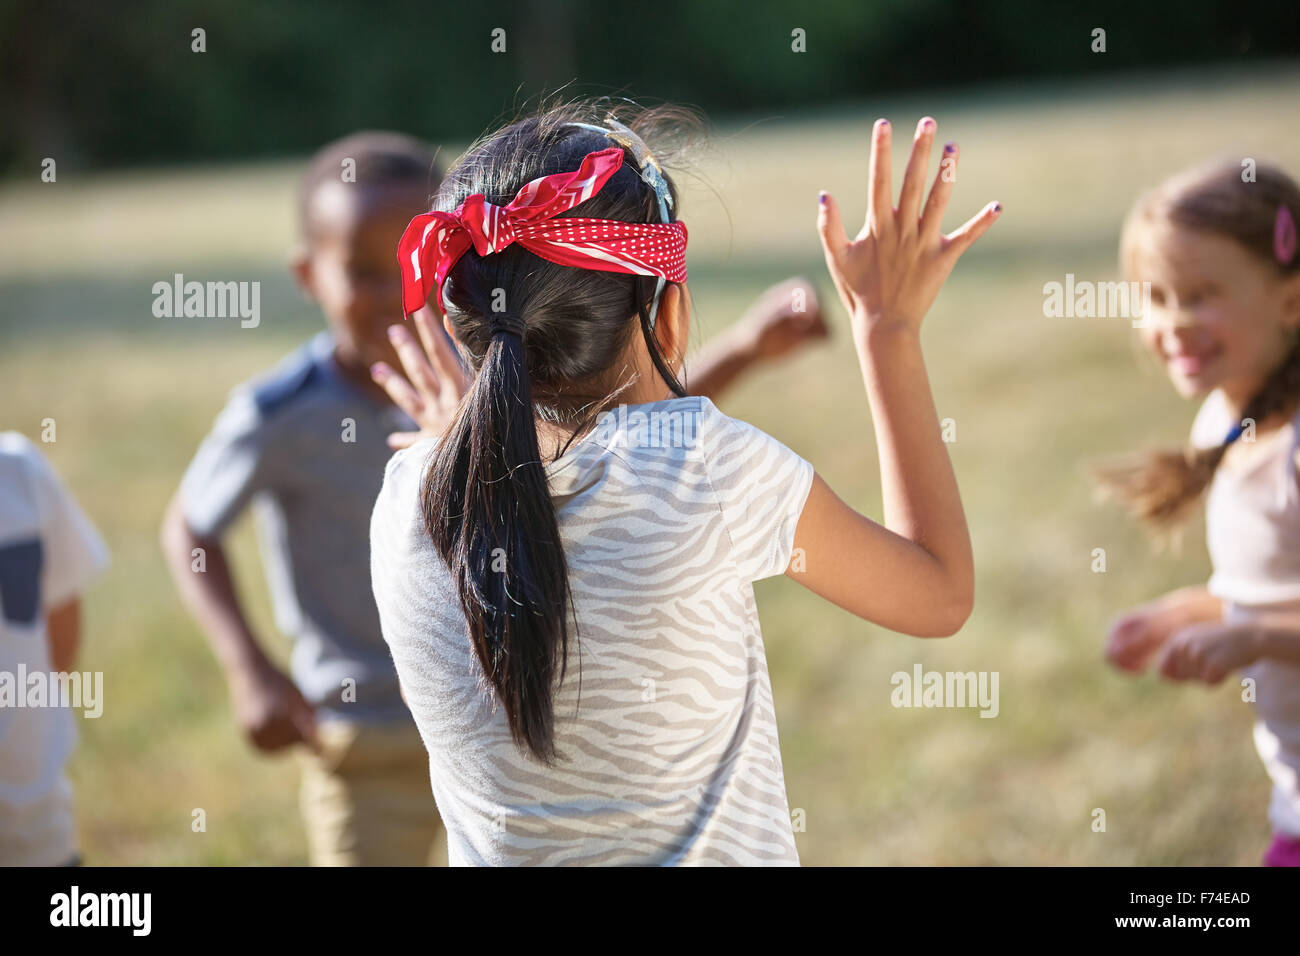 Kids having fun playing blind man's buff at the park - Stock Image